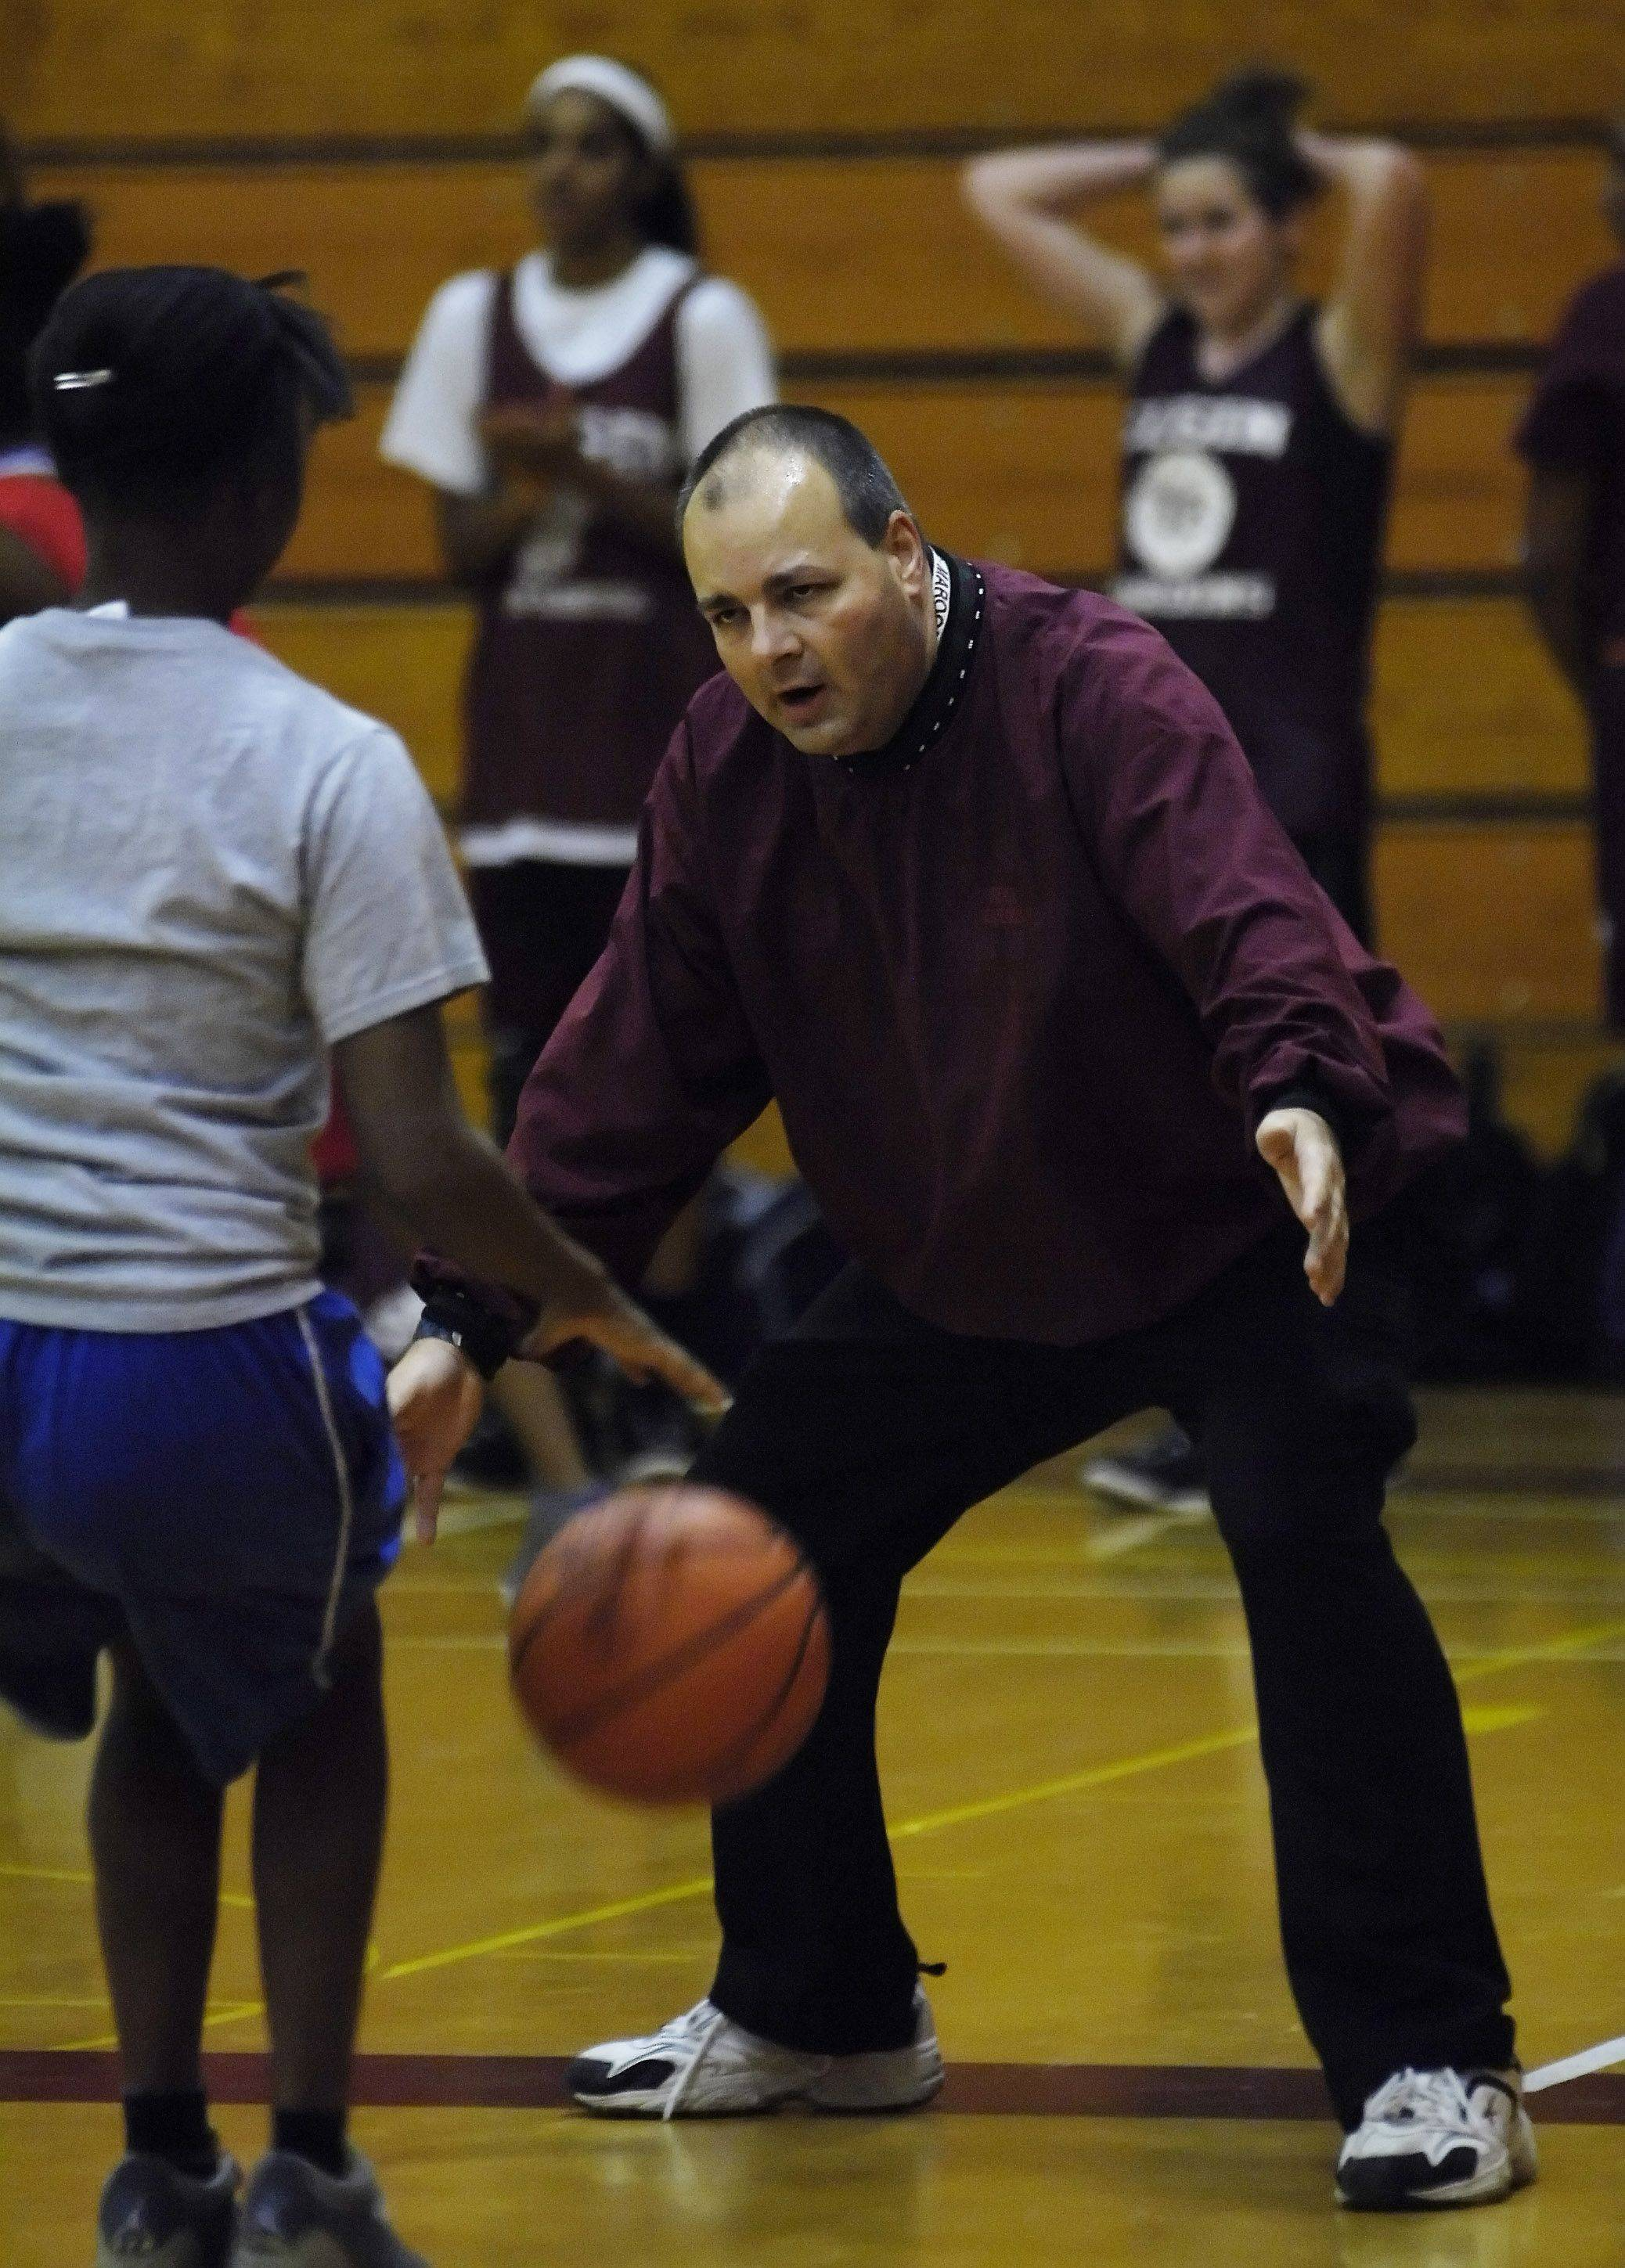 Elgin High's Dr. Nick Bumbales will be inducted into the IBCA Hall of Fame April 30 as a Friend of Basketball.